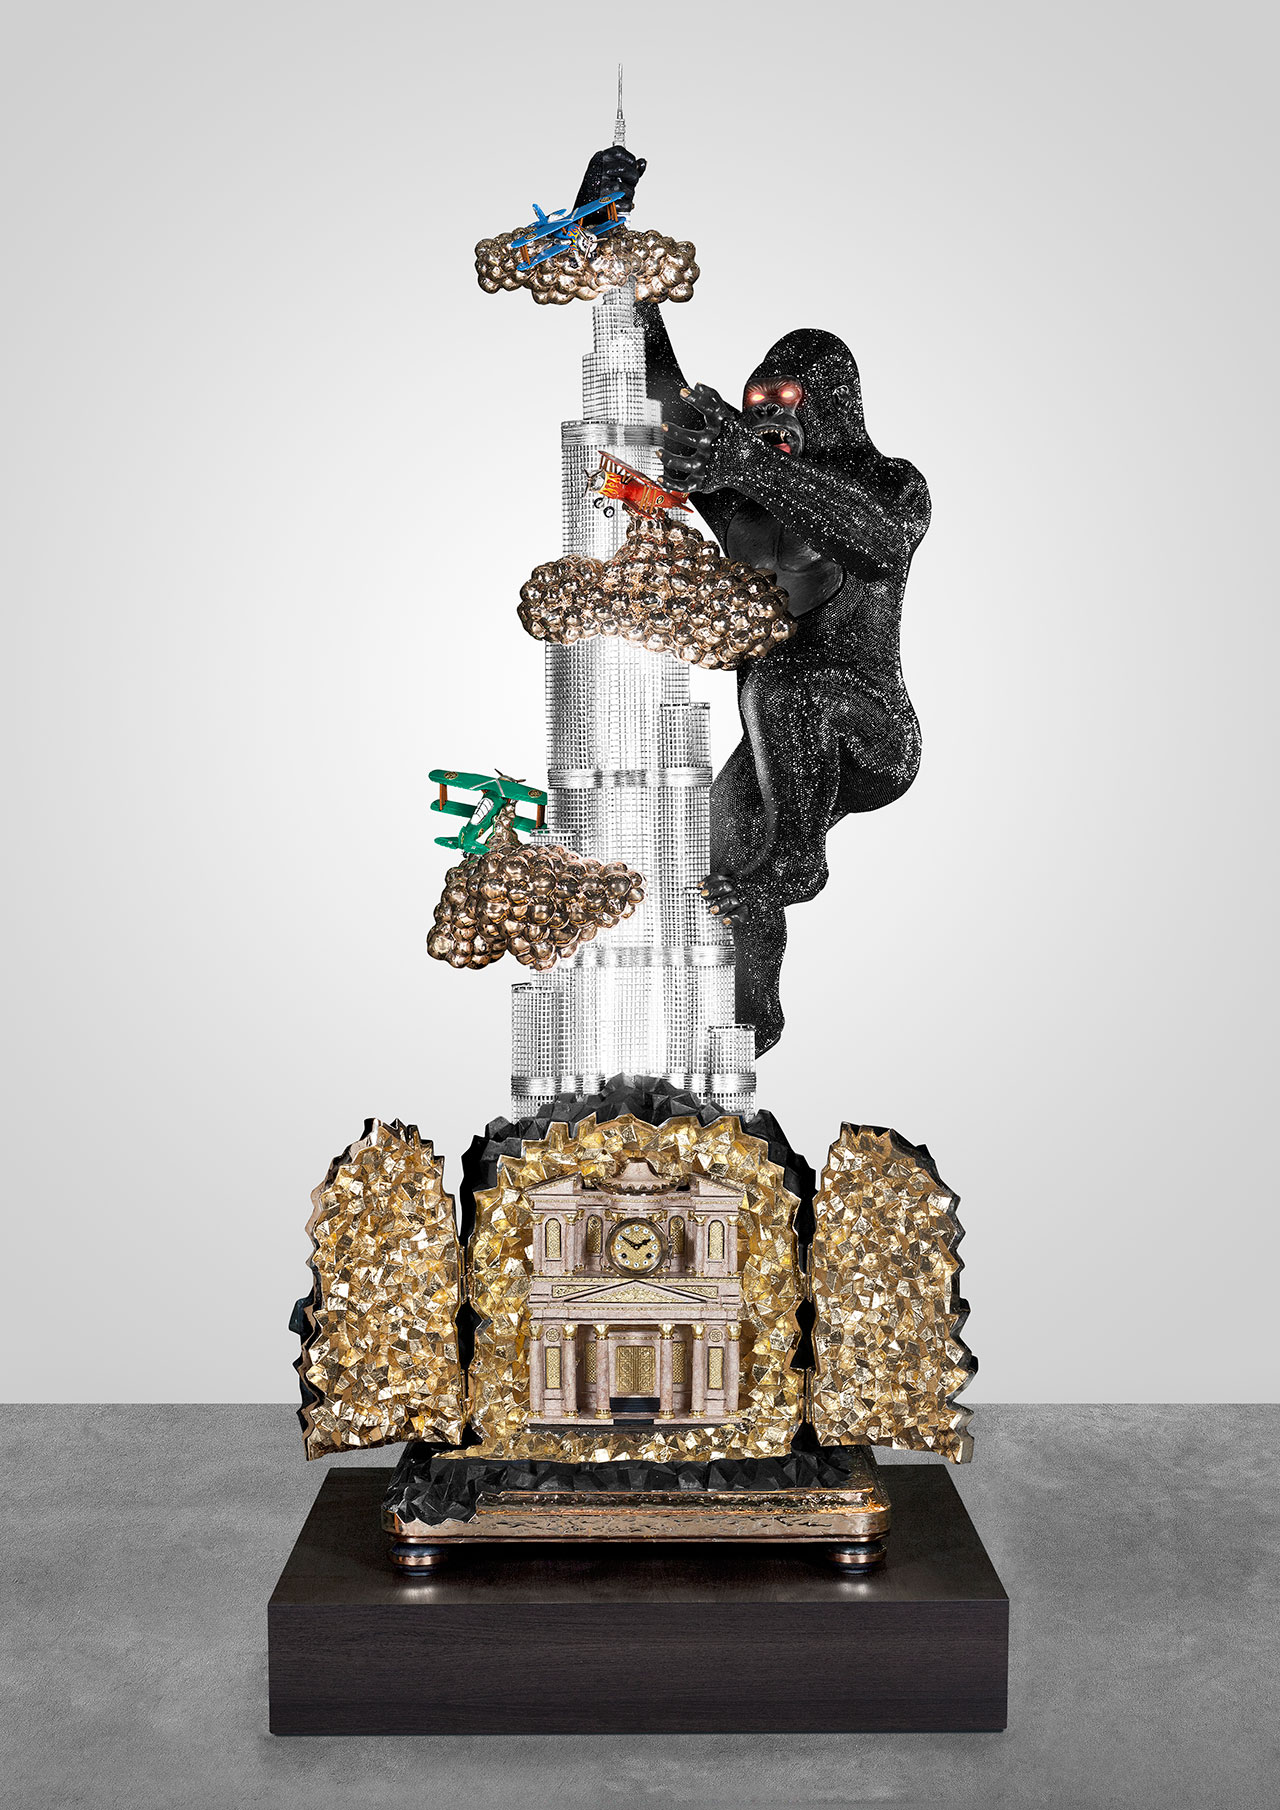 BURJ KHALIFA from Landmark series, 2013–14. Polished and patinated bronze, aluminum, 24-karat gilding, silver leaf, Swarovski crystals, mechanical clockwork, faux marble, paint, handblown glass, LED light fittings, electric motors. Courtesy of Carpenters Workshop Gallery. Photo by Loek Blonk.